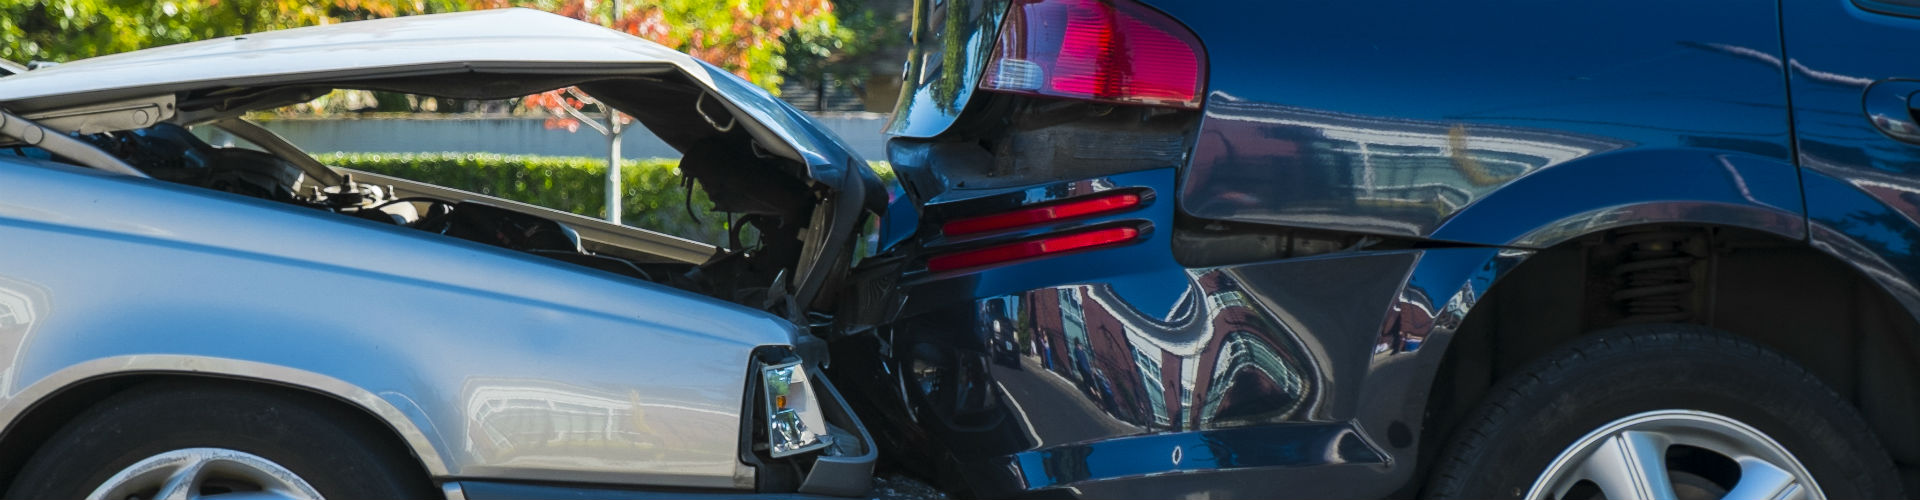 What to do after a car accident? Personal Injury Attorney Portland